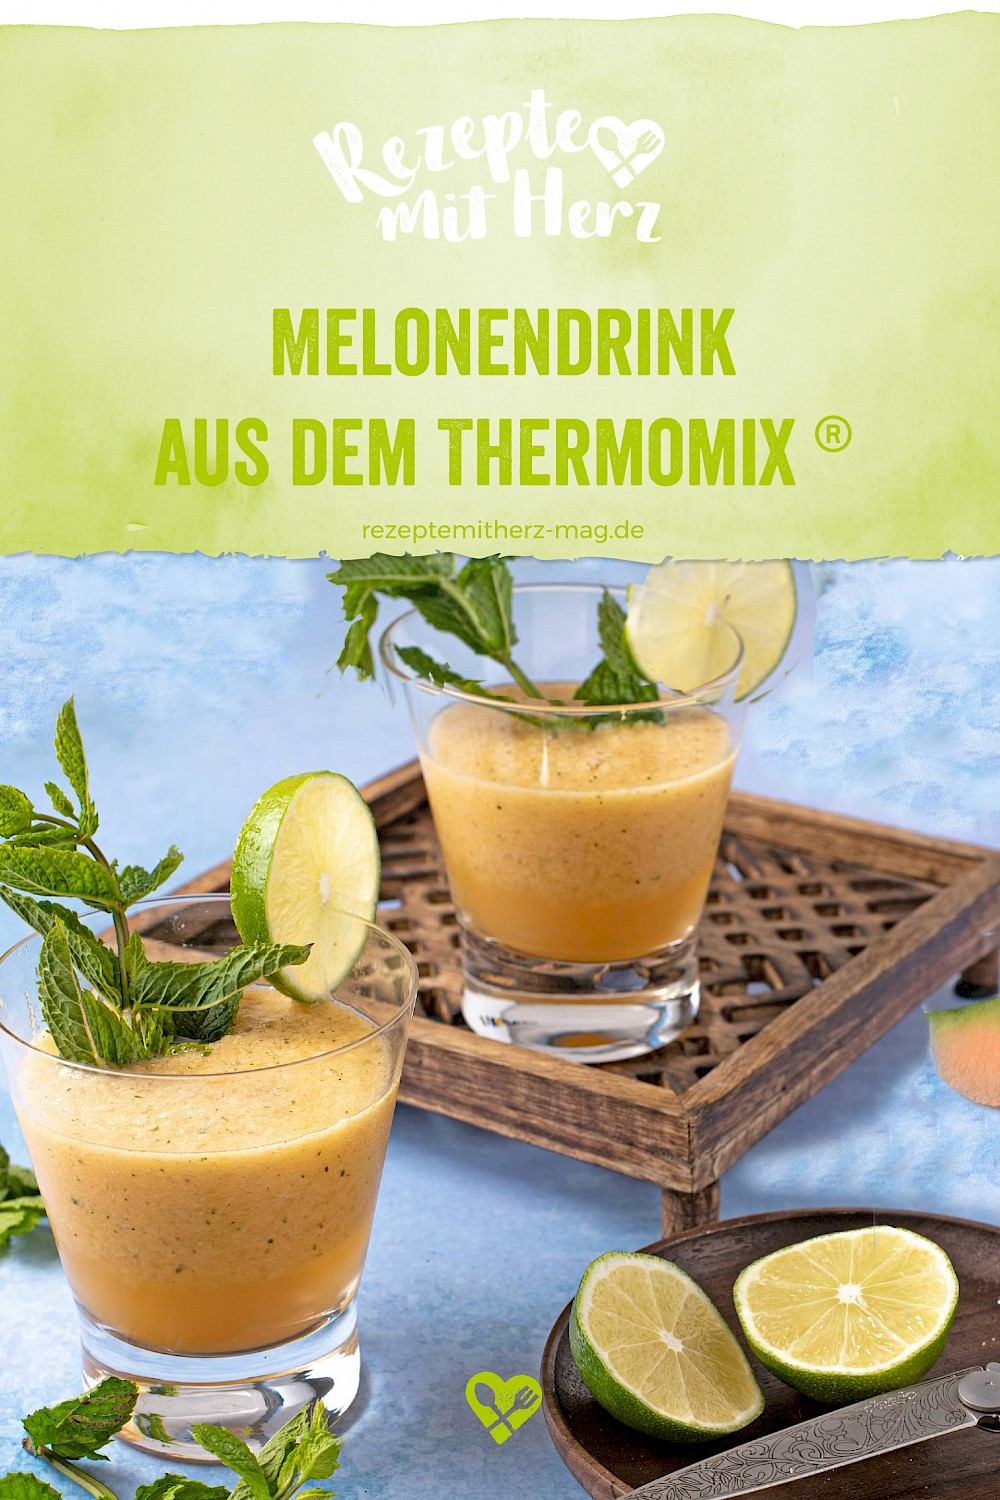 Melonendrink aus dem Thermomix®